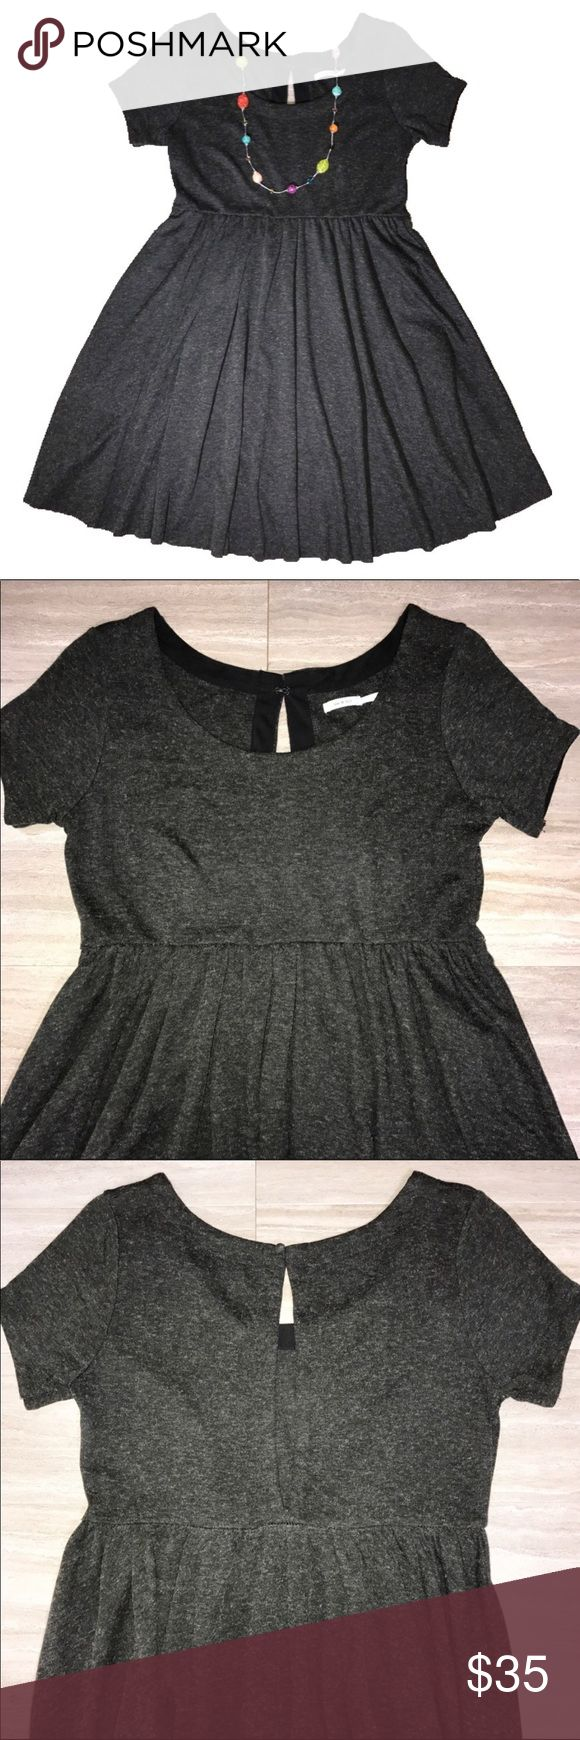 Urban Outfitters Tshirt Dress Heather Gray Large Urban Outfitters, Kimchi Blue dark heathered gray short sleeve midi tshirt dress. Fit and flare, fitted at top, flared at skirt, long keyhole back. No zipper, slip on, small hook at back neck. Acrylic/wool blend, heavier weight tee fabric, soft and comfortable. Great condition. Urban Outfitters Dresses Midi